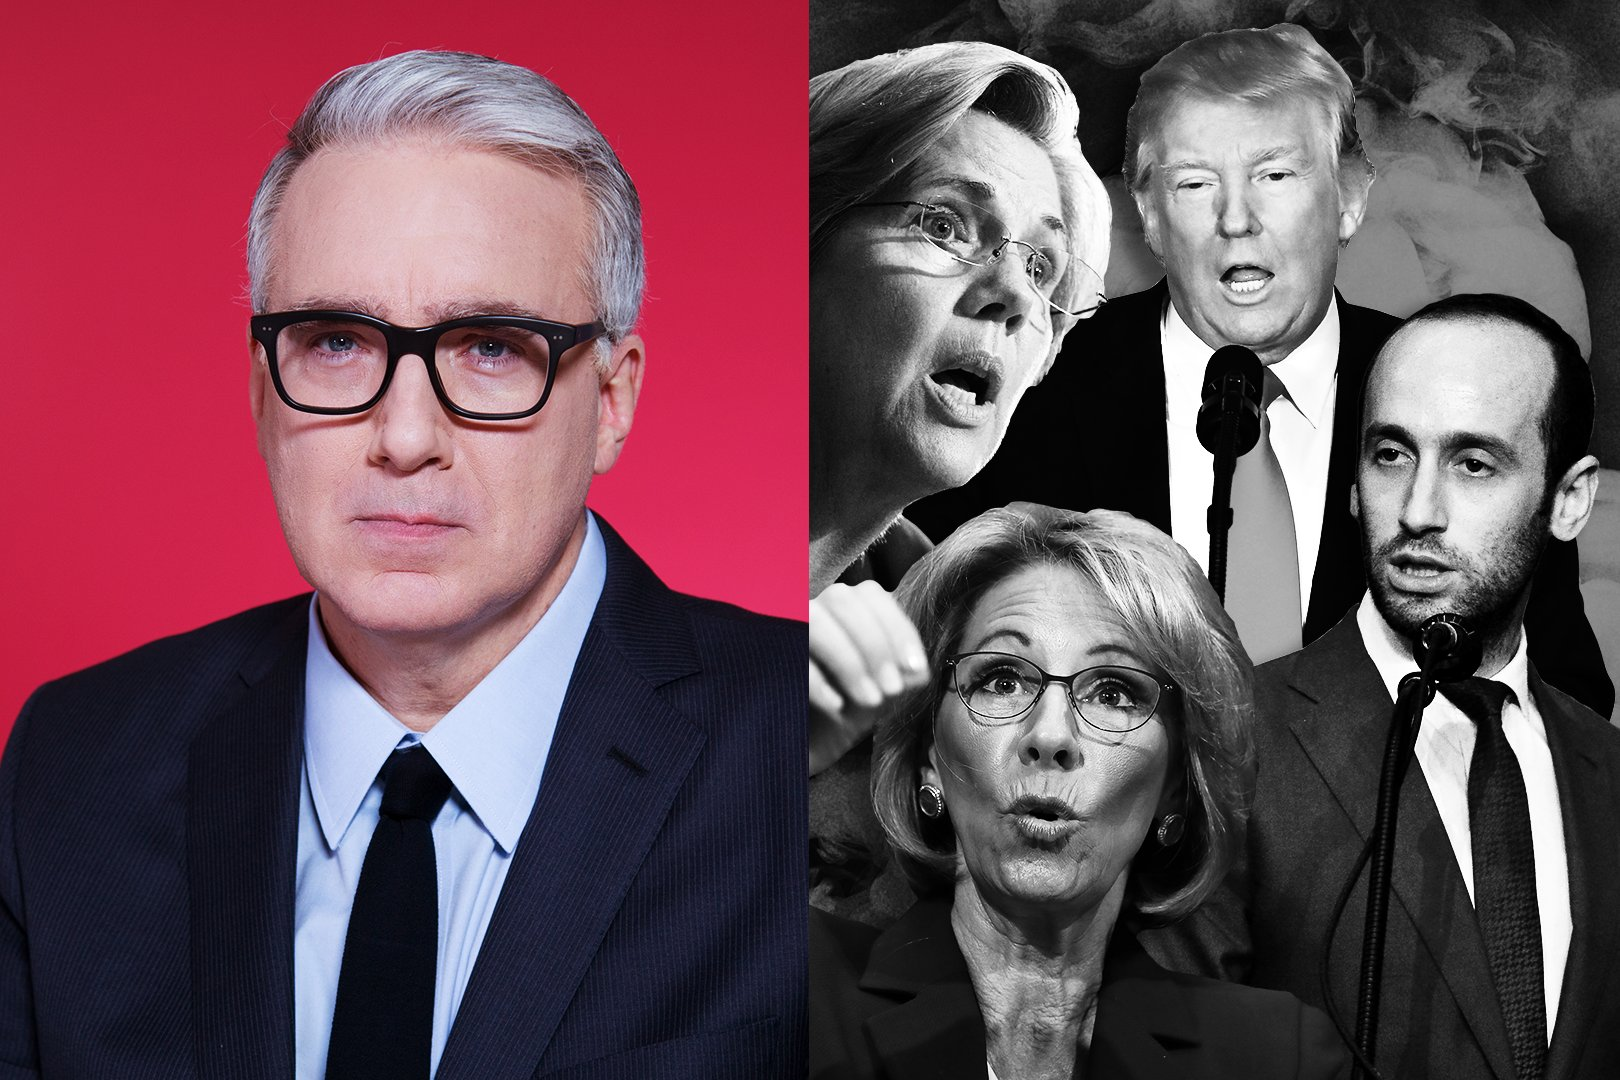 .@KeithOlbermann asks: Is the Trump White House high? https://t.co/jc2b68vKvB